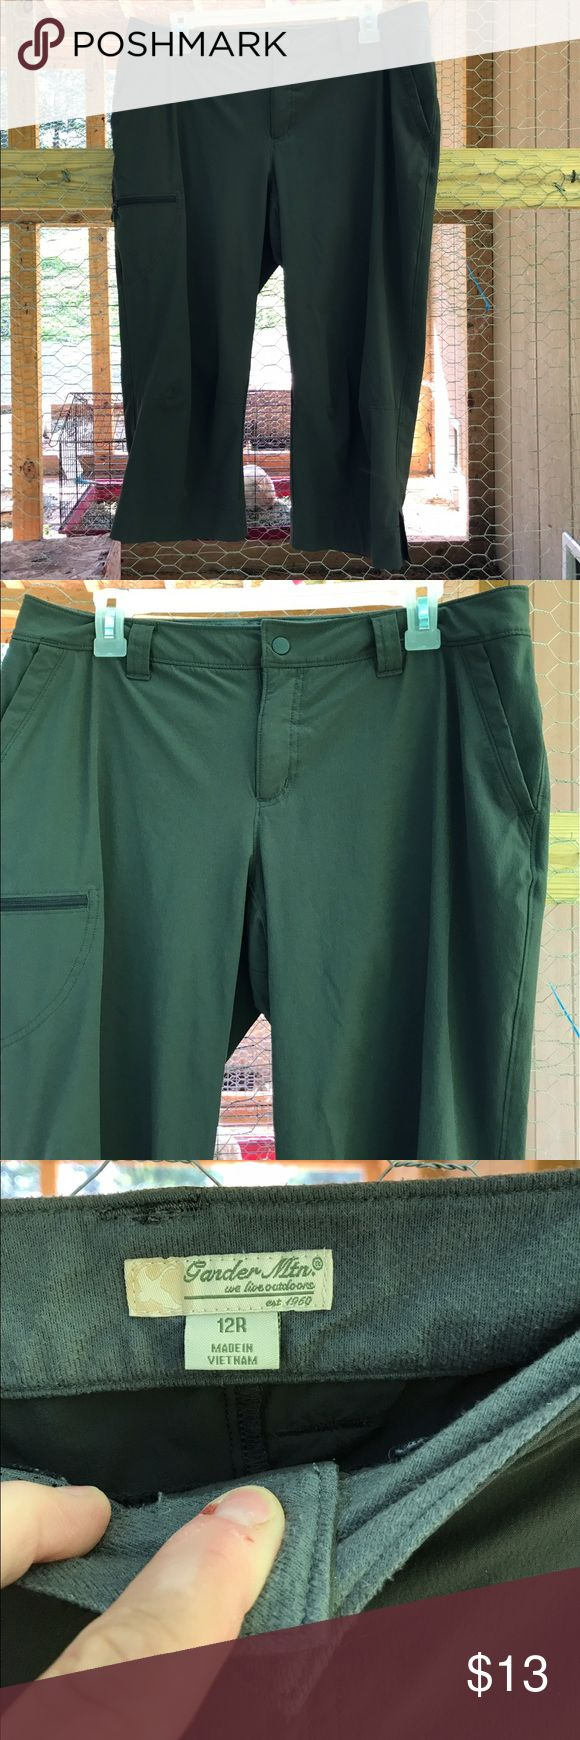 Gander Mountain Dark Green Women's Capris Sz 12 R Gander Mountain women's dark Army green capris are size 12R. Inside waist is a soft material. Capris have belt loops, 2 slash pockets, 3 zip pockets and closes with a snap and zipper. One zippered pocket is on right leg and other 2 in back. There are slits in each side of legs. Made in Vietnam of 86% nylon 14% spandex. All pockets are Mesh lined. Color is close to the first picture. Gander Mountain Pants Capris